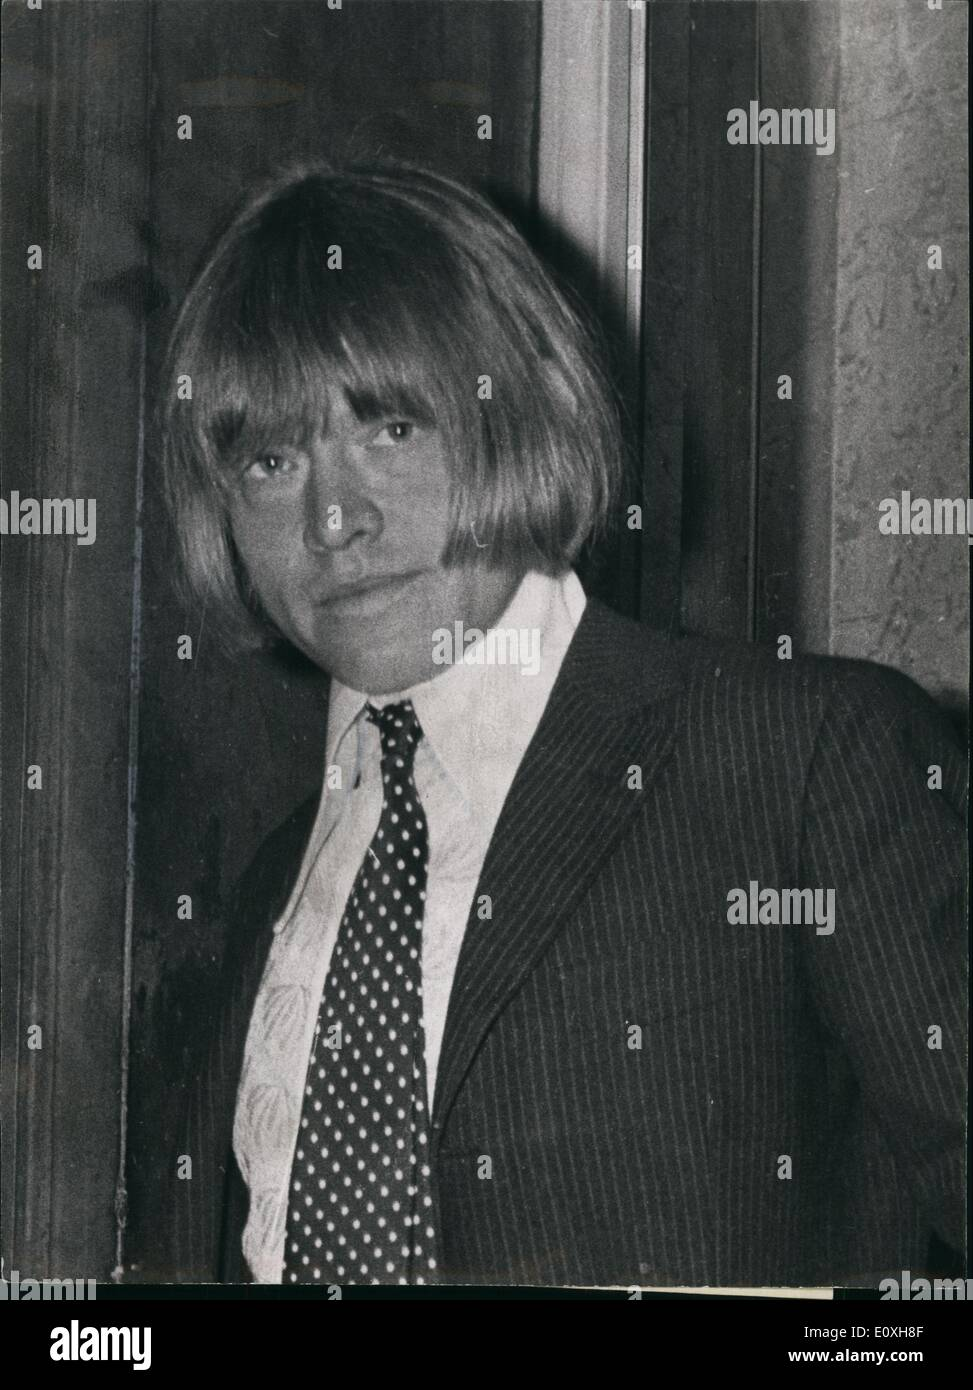 Dec. 00, 1967 - Rolling Stone Brian Jones jailed for nine months: Rolling Stones guitarist Braian Jones, 25, was jailed for total of nie months this afternoon after admitting two drug charges. He was also ordered to pay £265.10s costs. For permitting his flat to be used for smoking cannabis, Jones was jailed for nine months, with three months concurrent for possessing cannabis. Jones counsel, Mr. James ''Illegible'' QC, asked for bail pending an appeal against sentence, but this was rejected by the chairman, Mr  Seaton - Stock Image